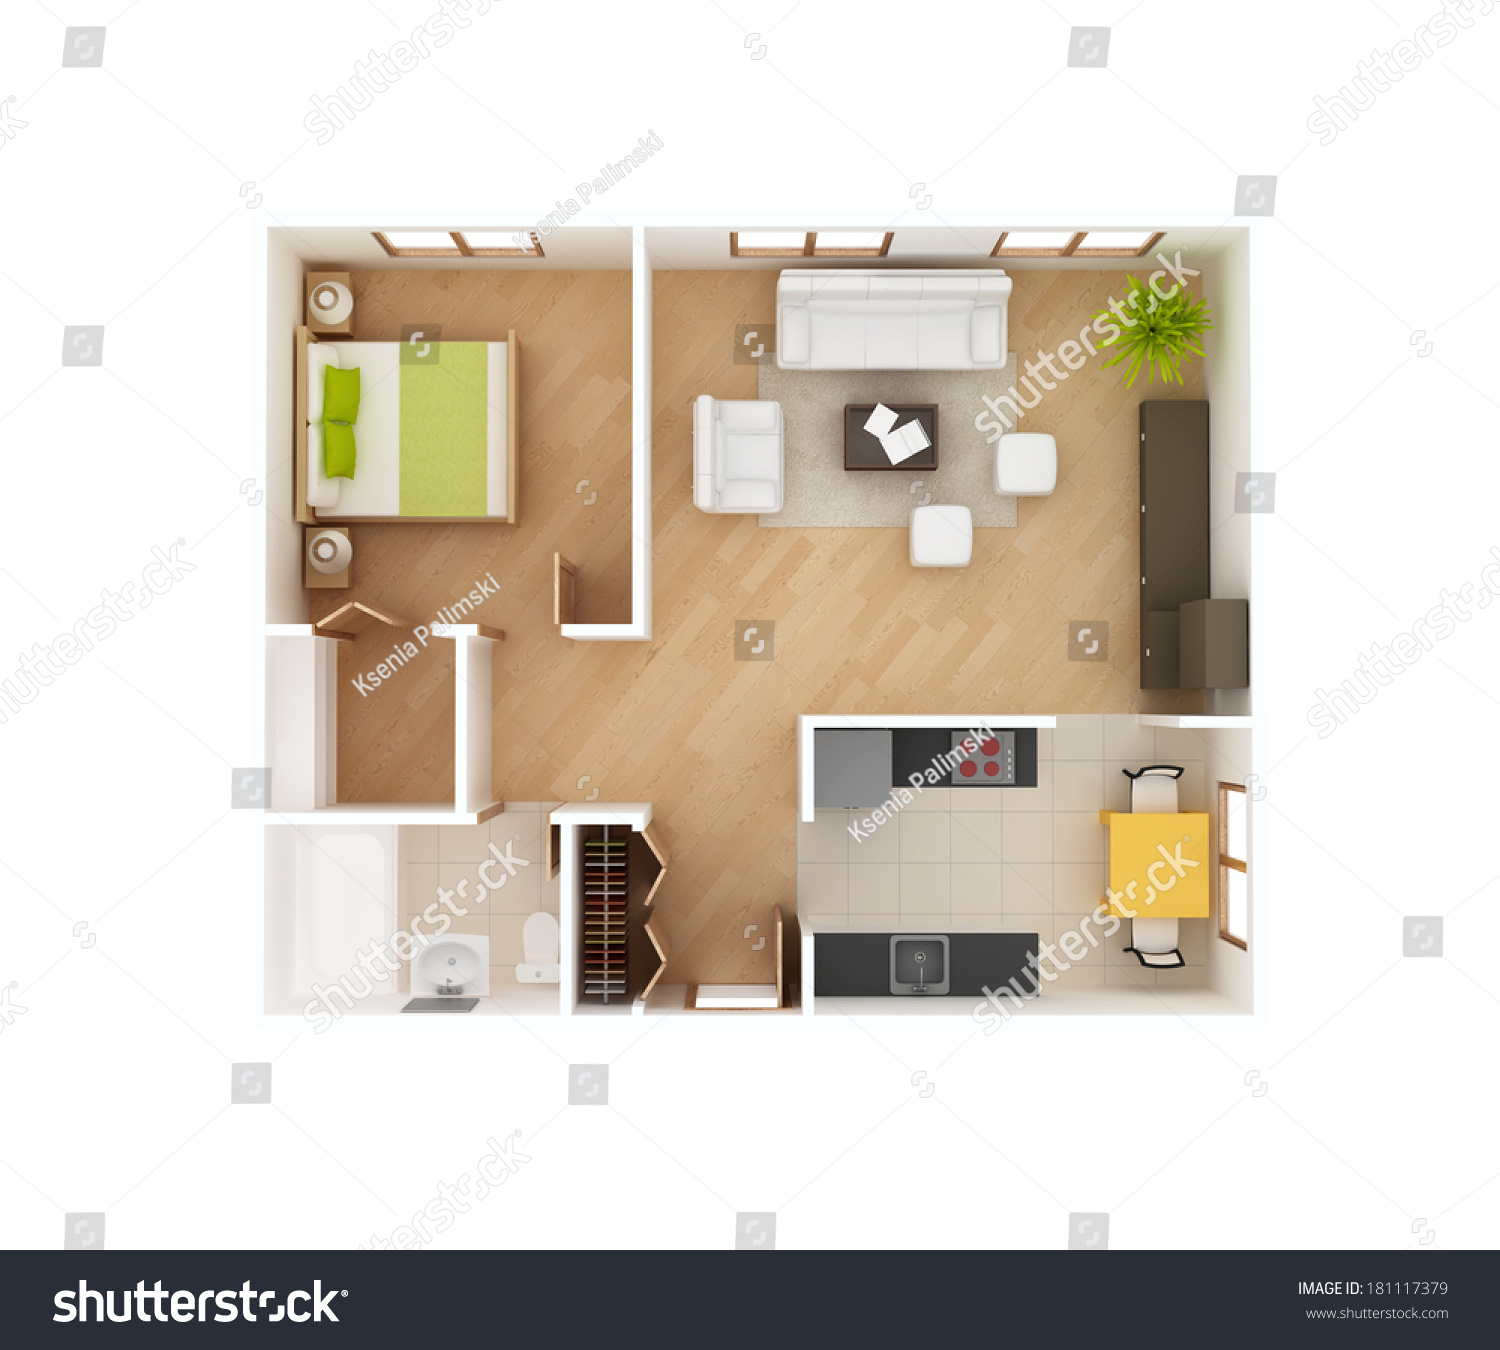 Fabulous Simple 3D Floor Plan House Top Stock Illustration 181117379 Largest Home Design Picture Inspirations Pitcheantrous